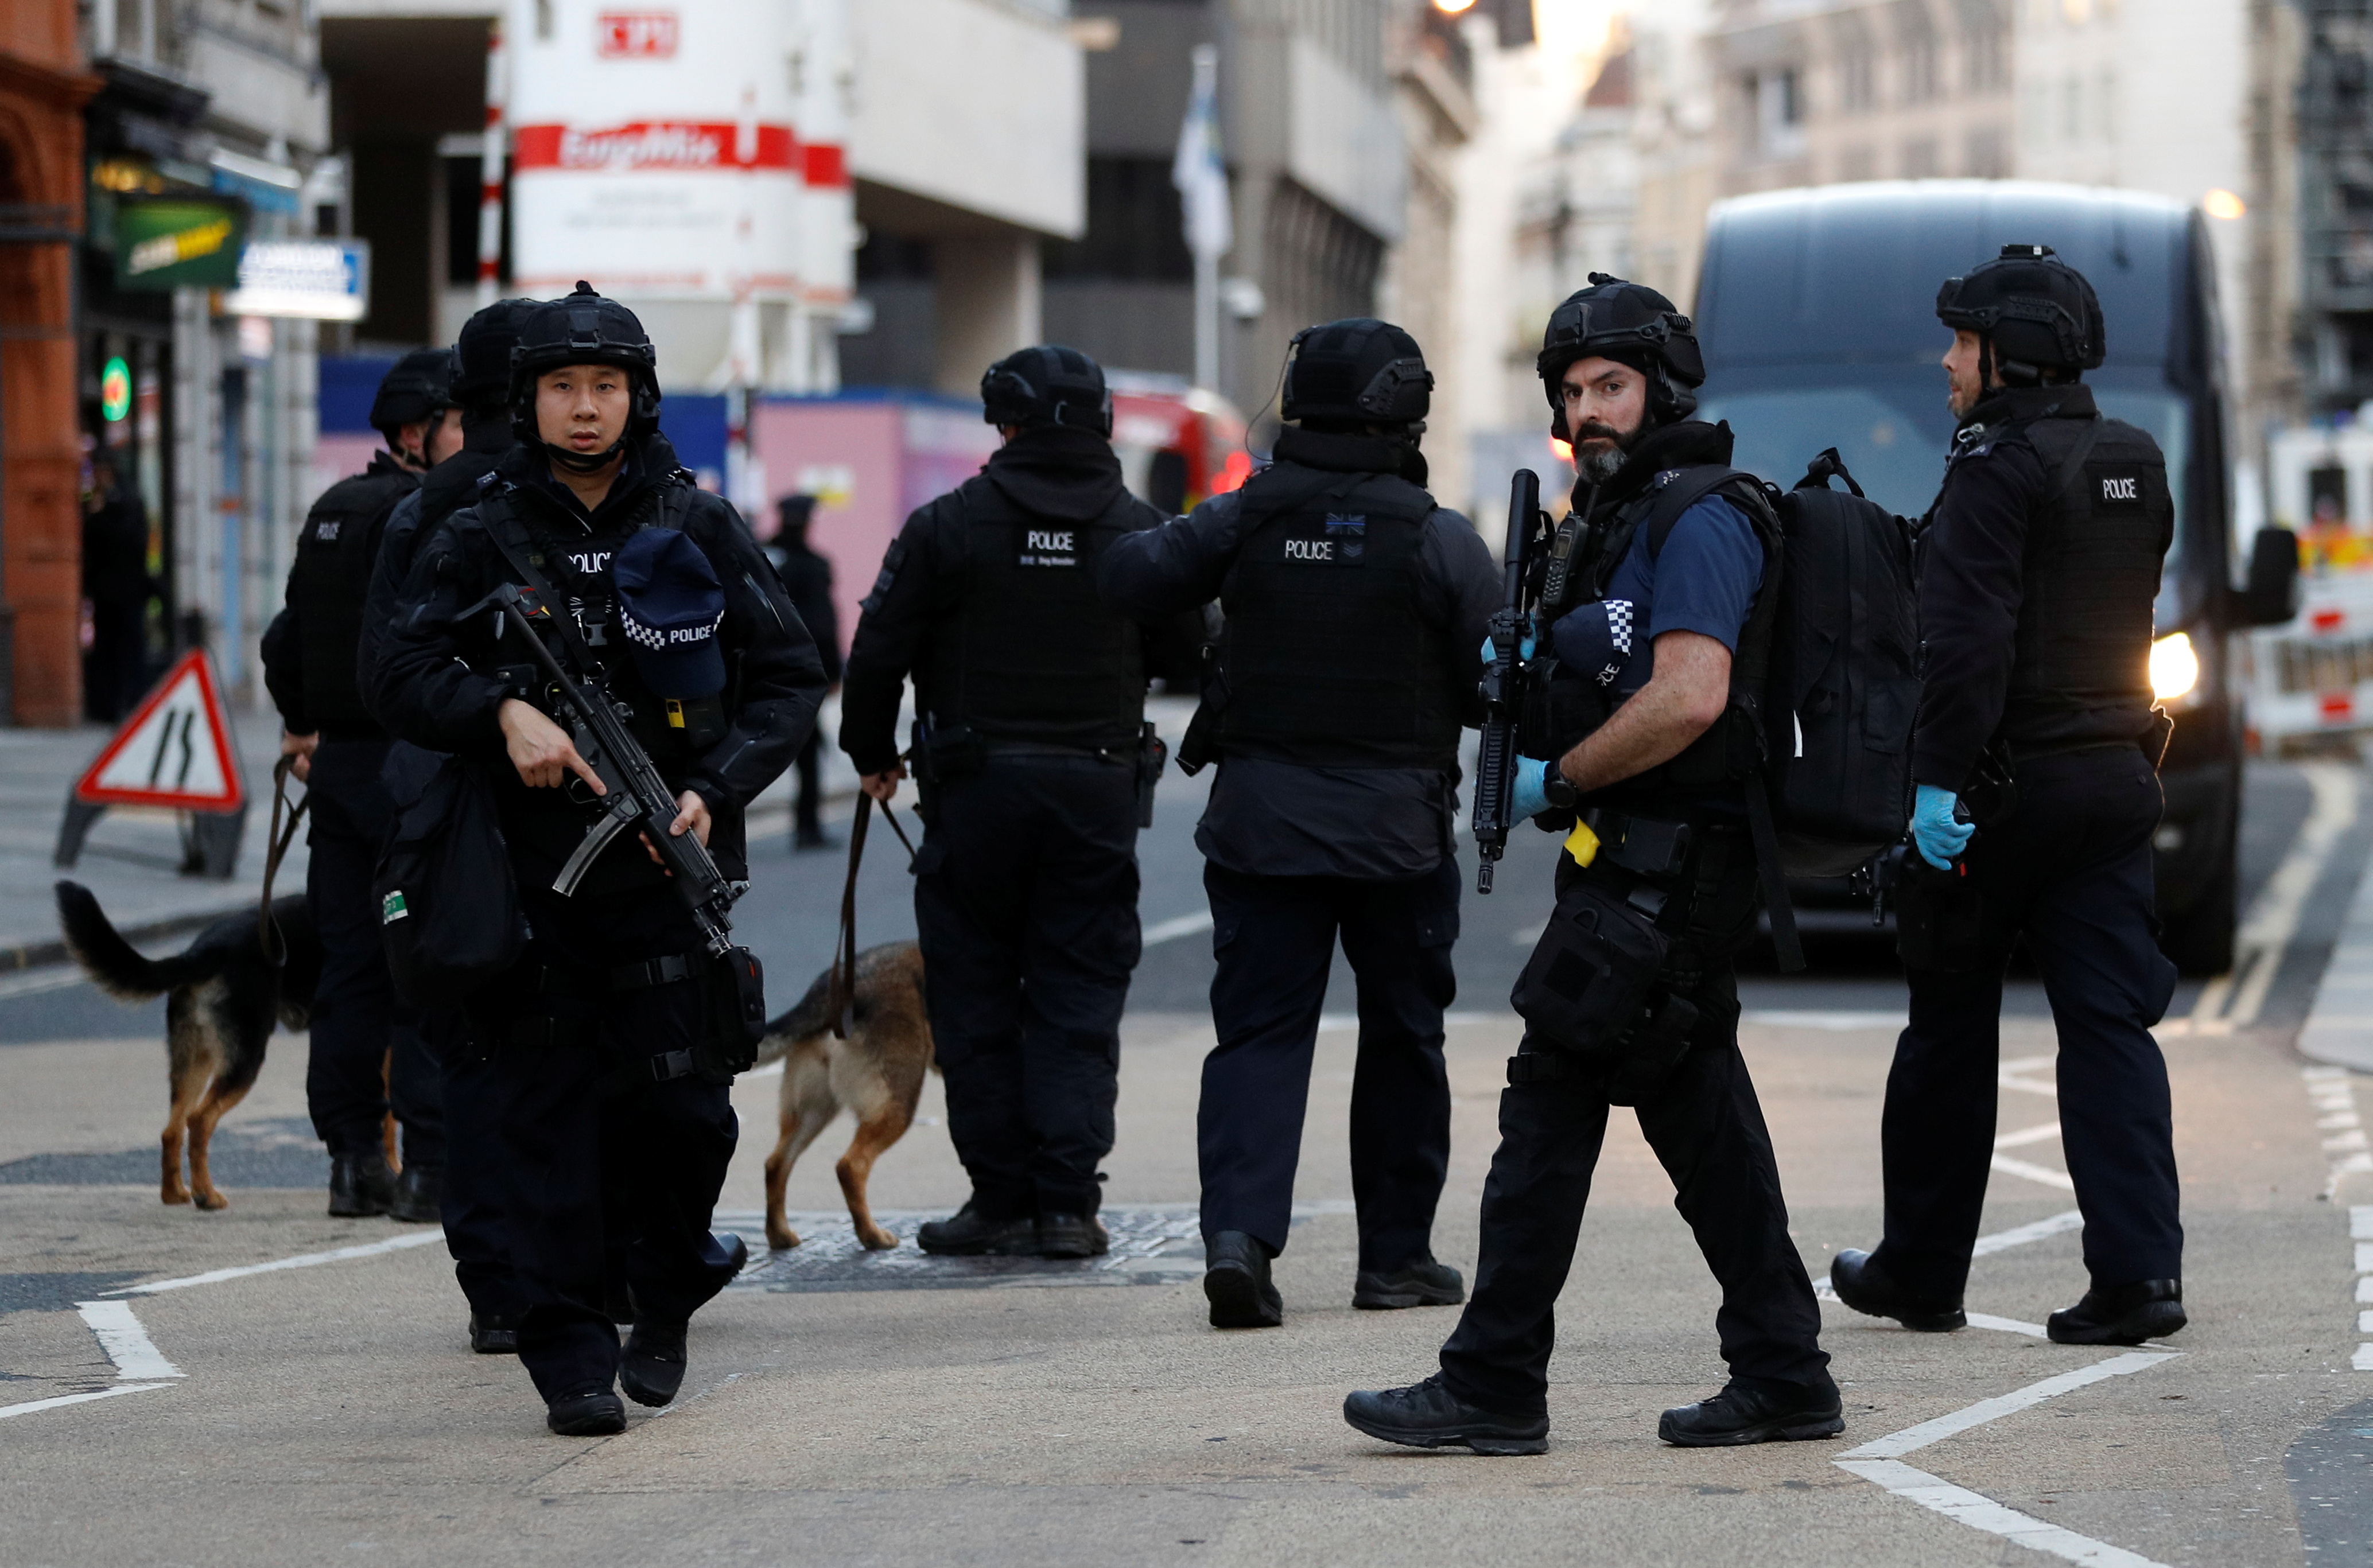 Police officers are seen near the site of an incident at London Bridge